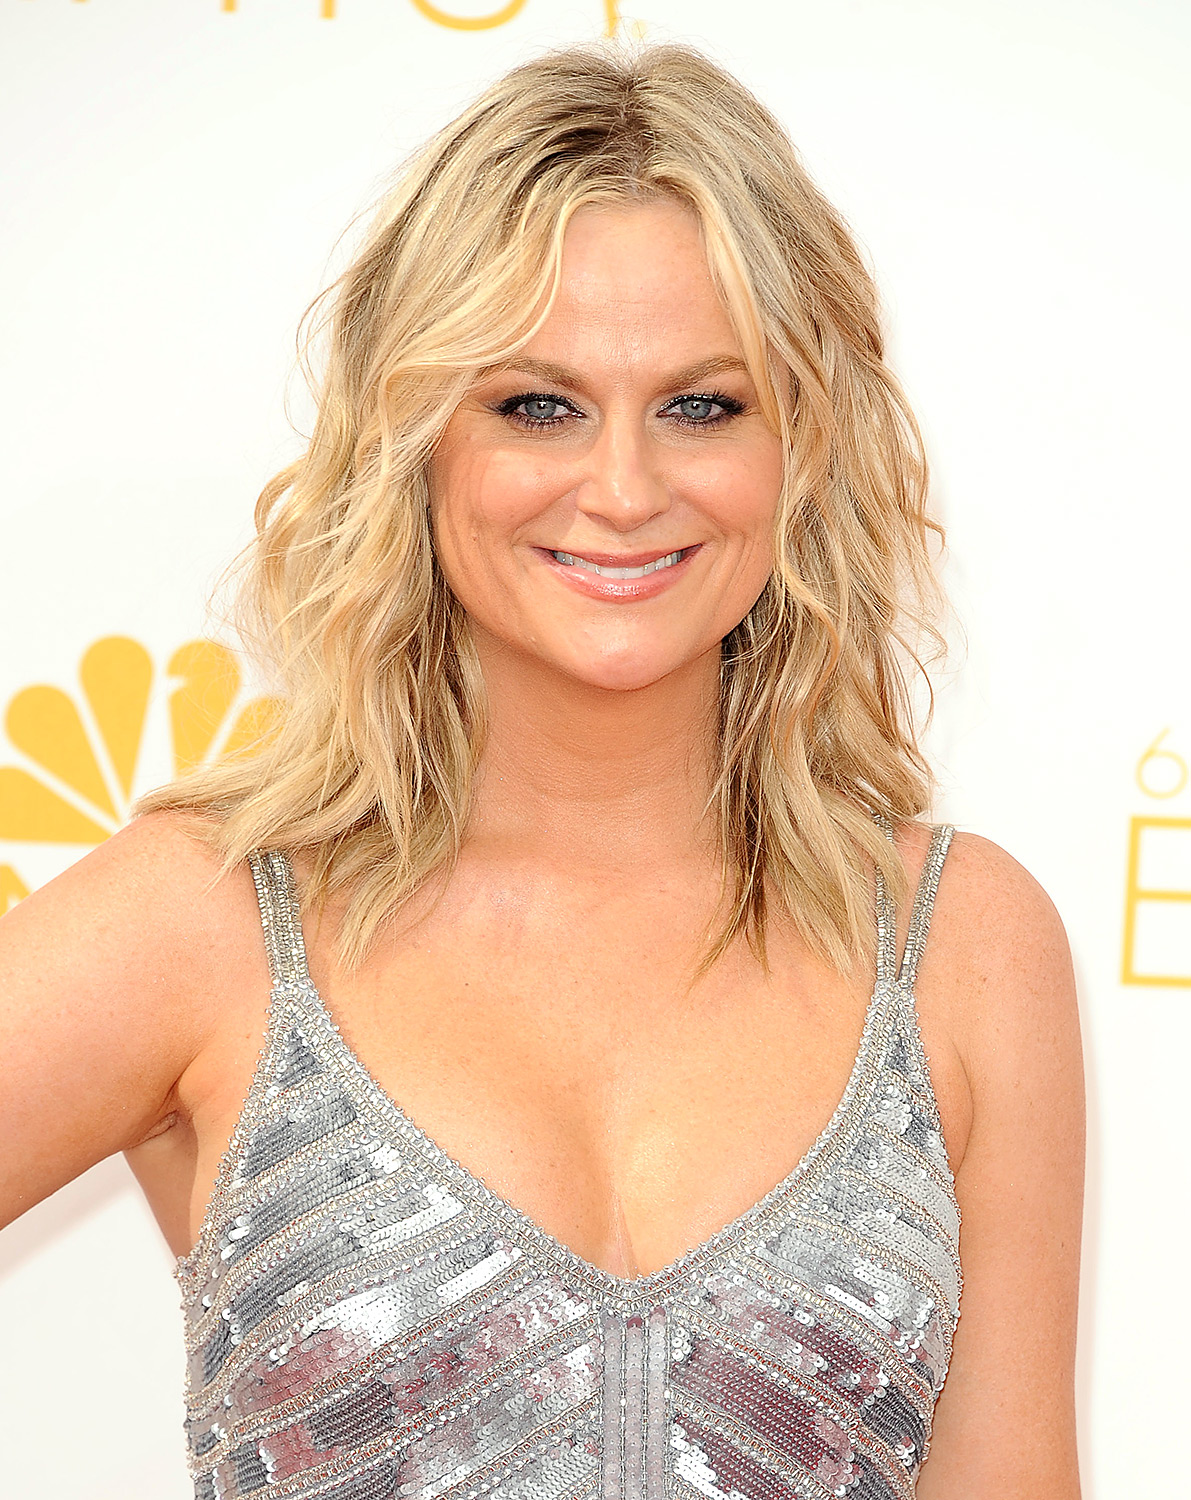 """The Parks and Recreation star opened up about her past cocaine and ecstasy use in her memoir Yes Please in 2014. """"I tried cocaine, which I instantly loved but eventually hated,"""" she recalled."""